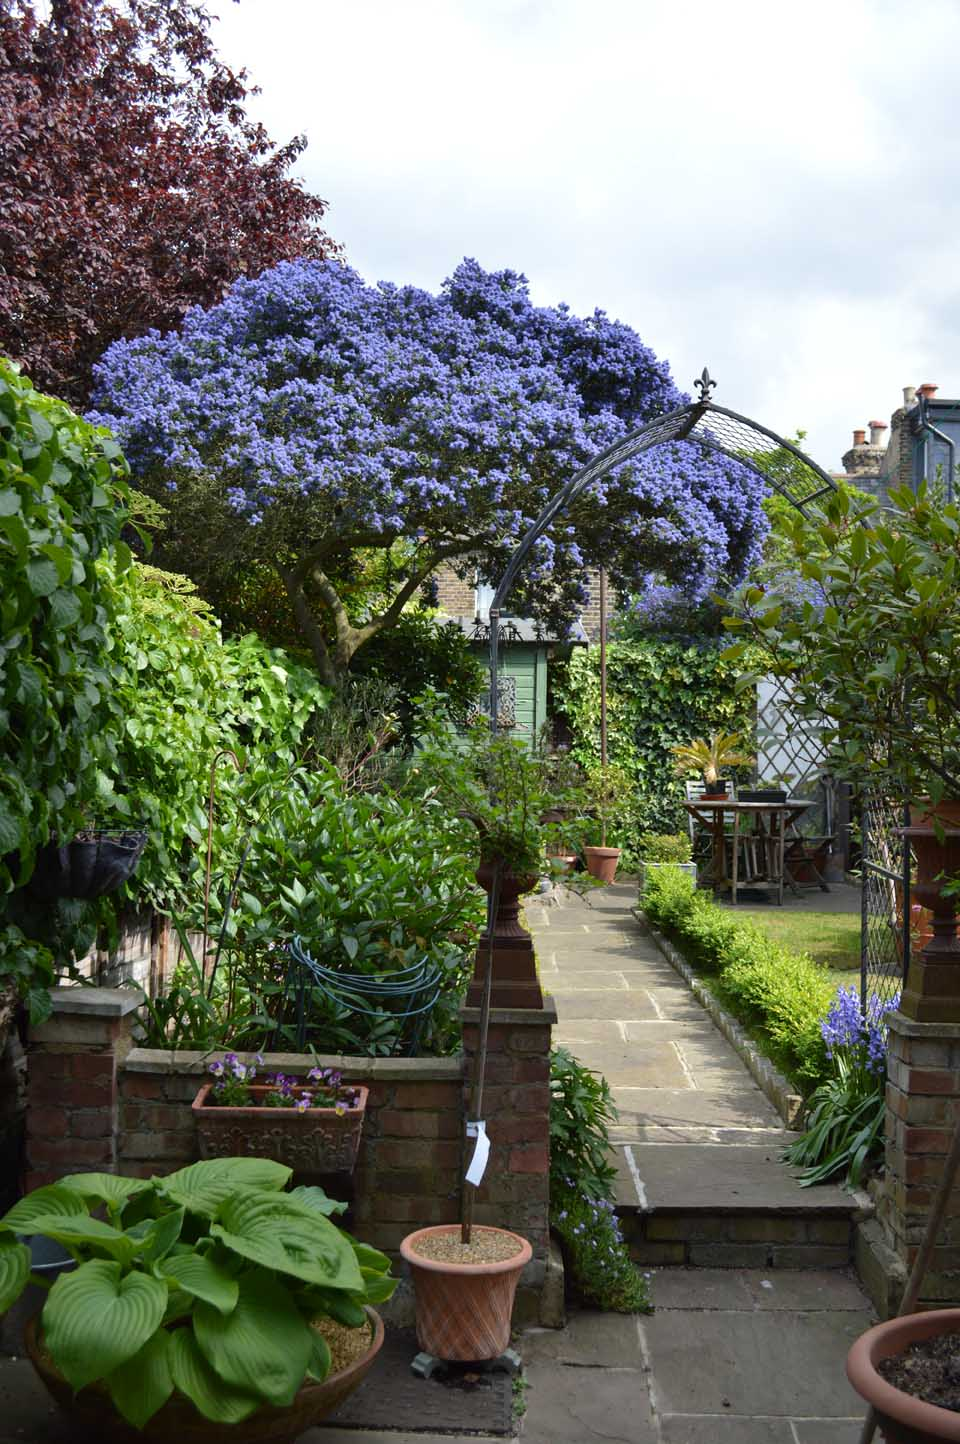 ceanothus and bluebells